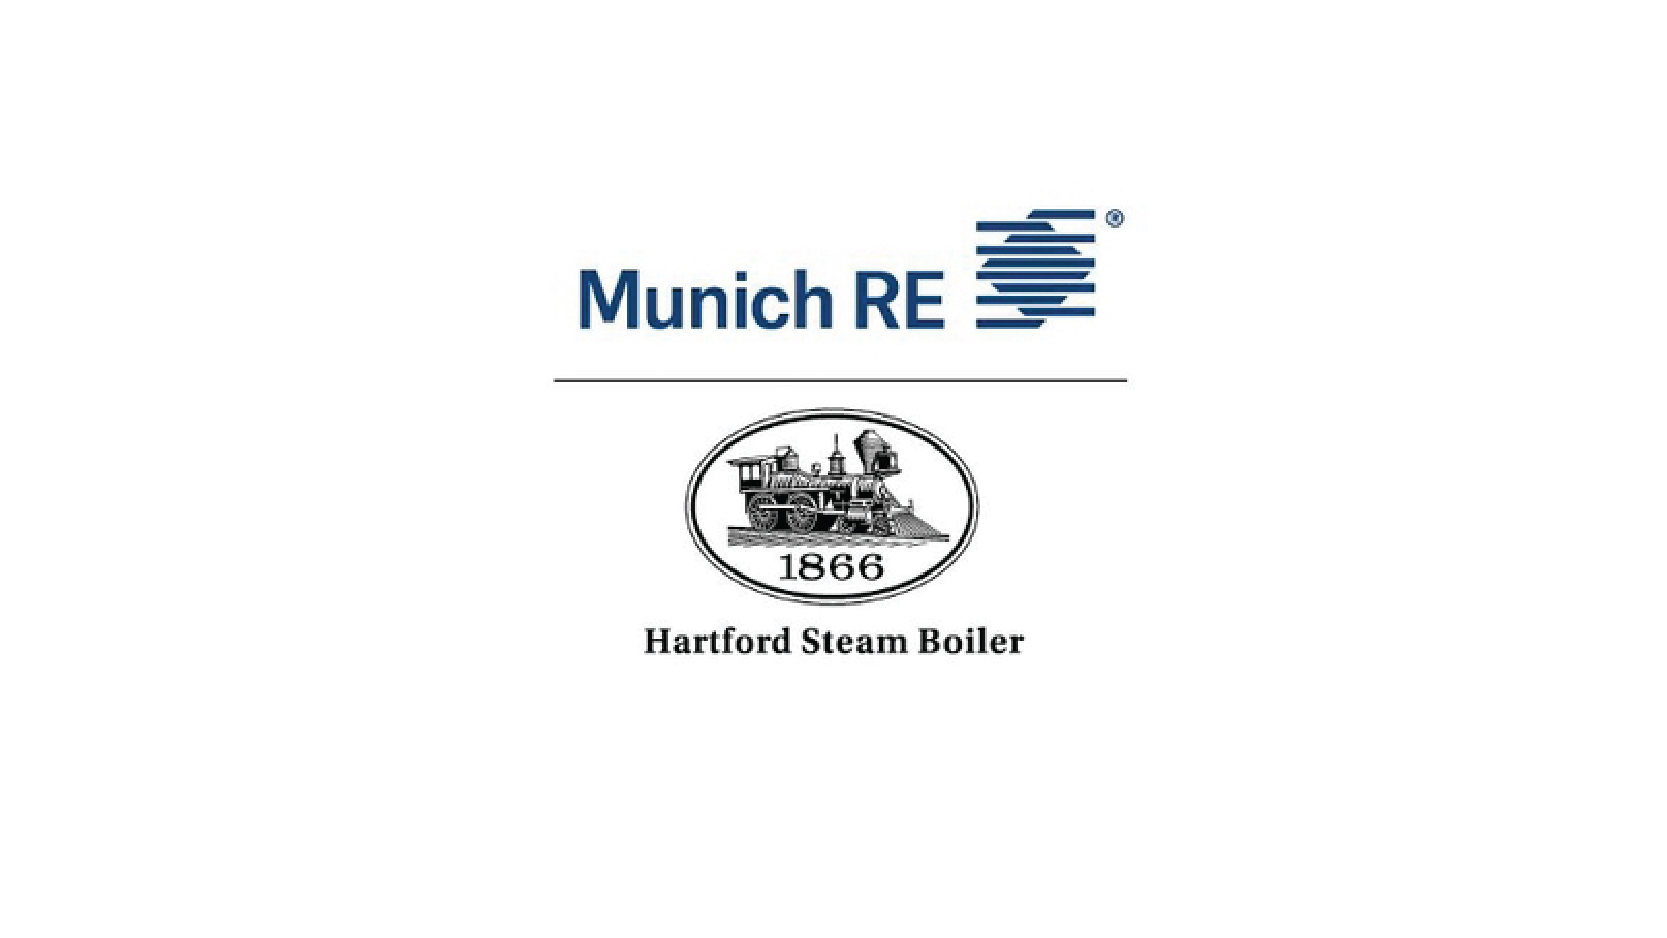 Munich RE Hartford Steam Boiler